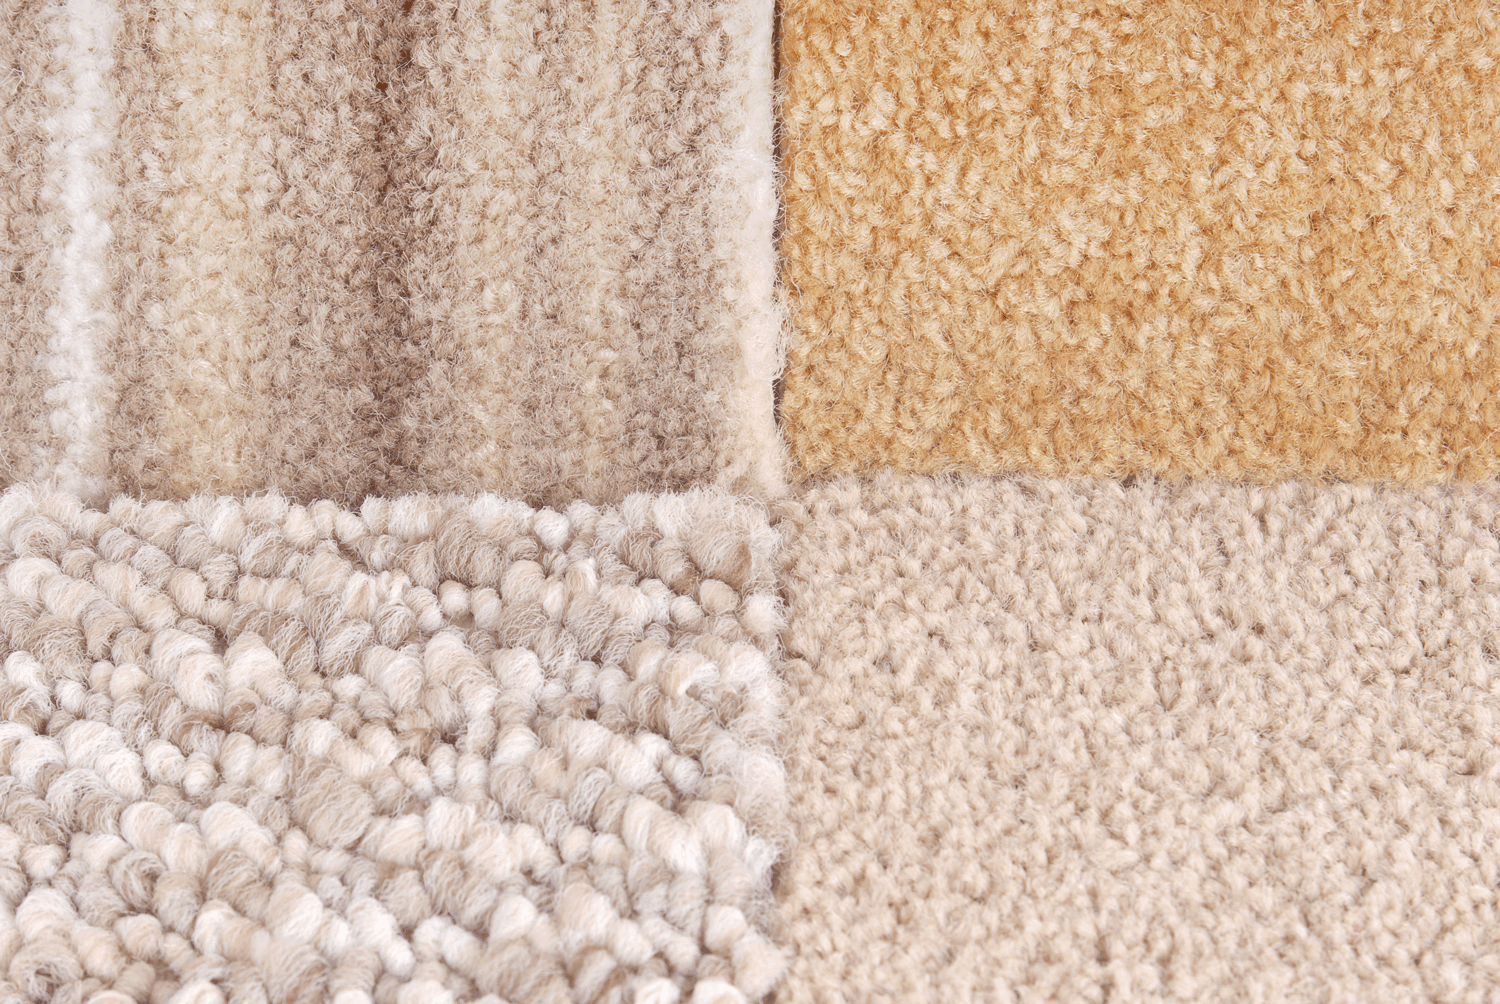 Types Of Carpet And Their Effects On Carpet Cleaning